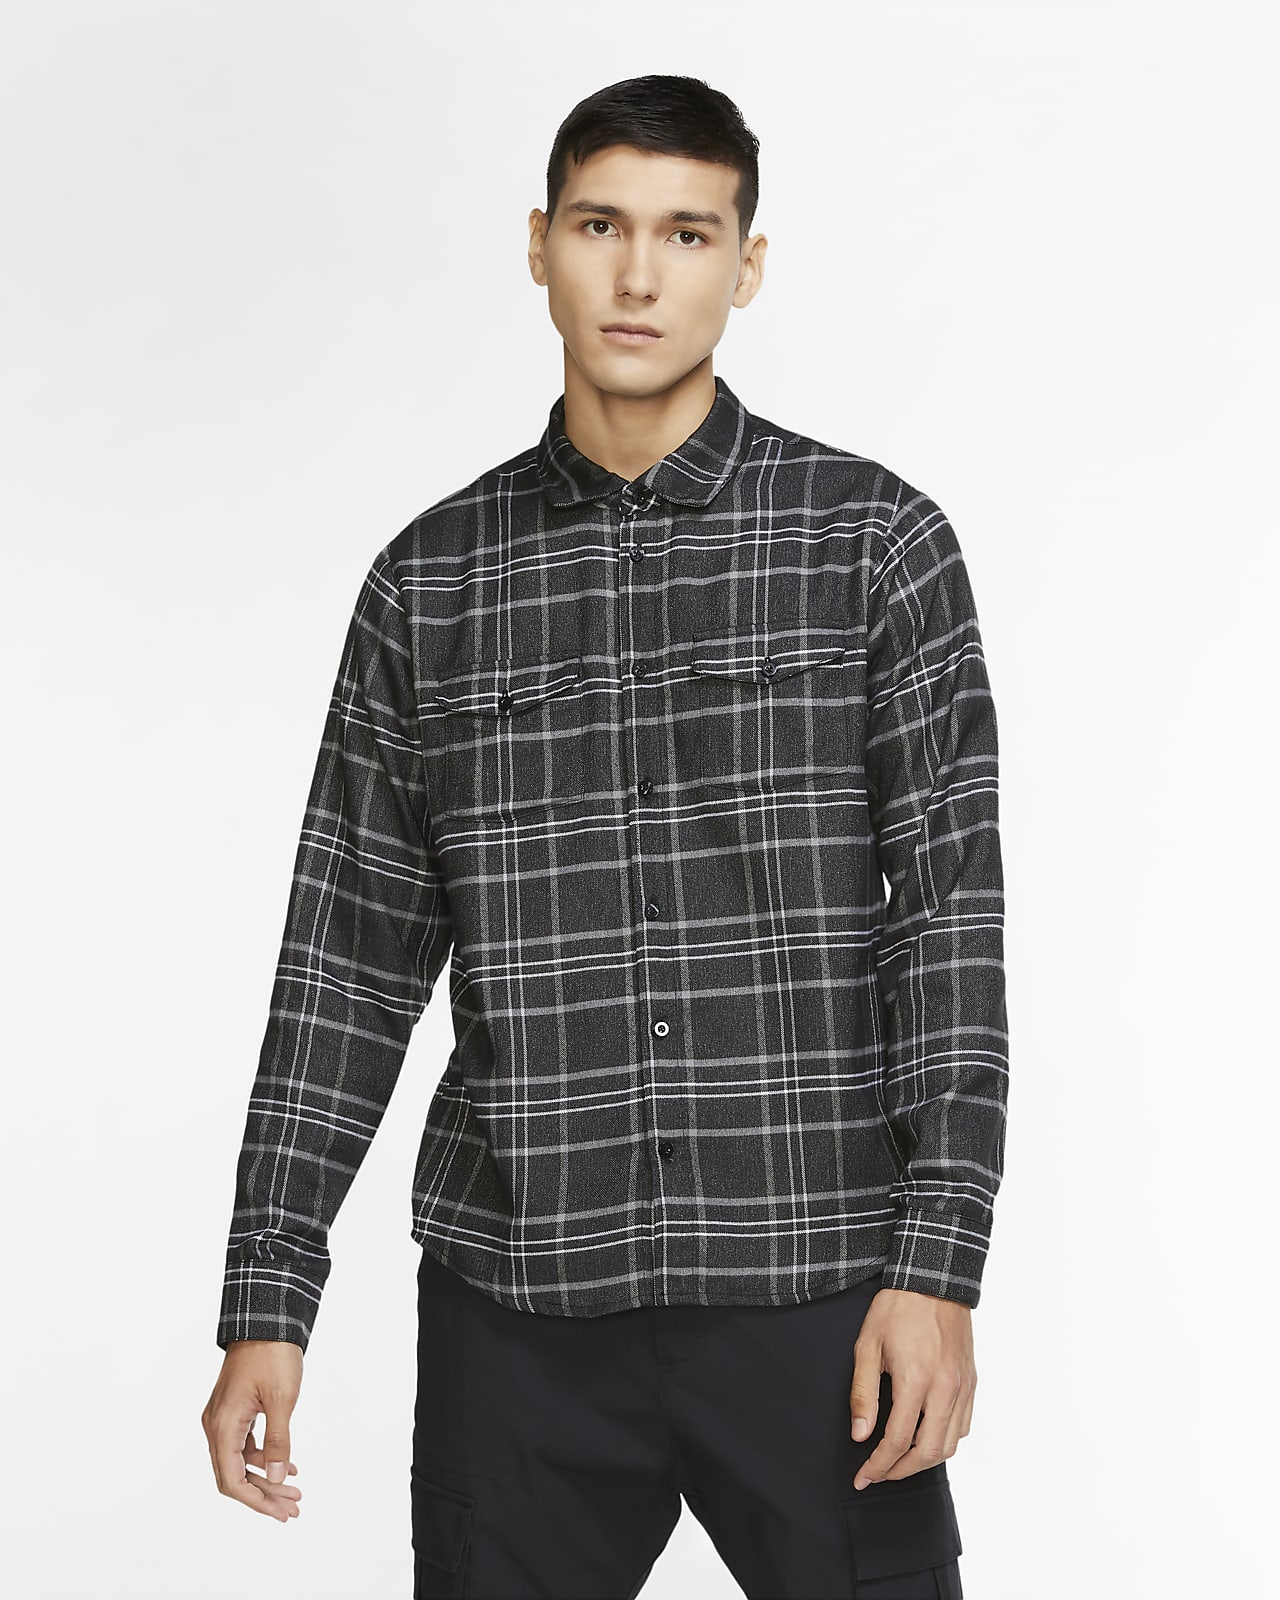 Nike SB Men's Flannel Skate Top